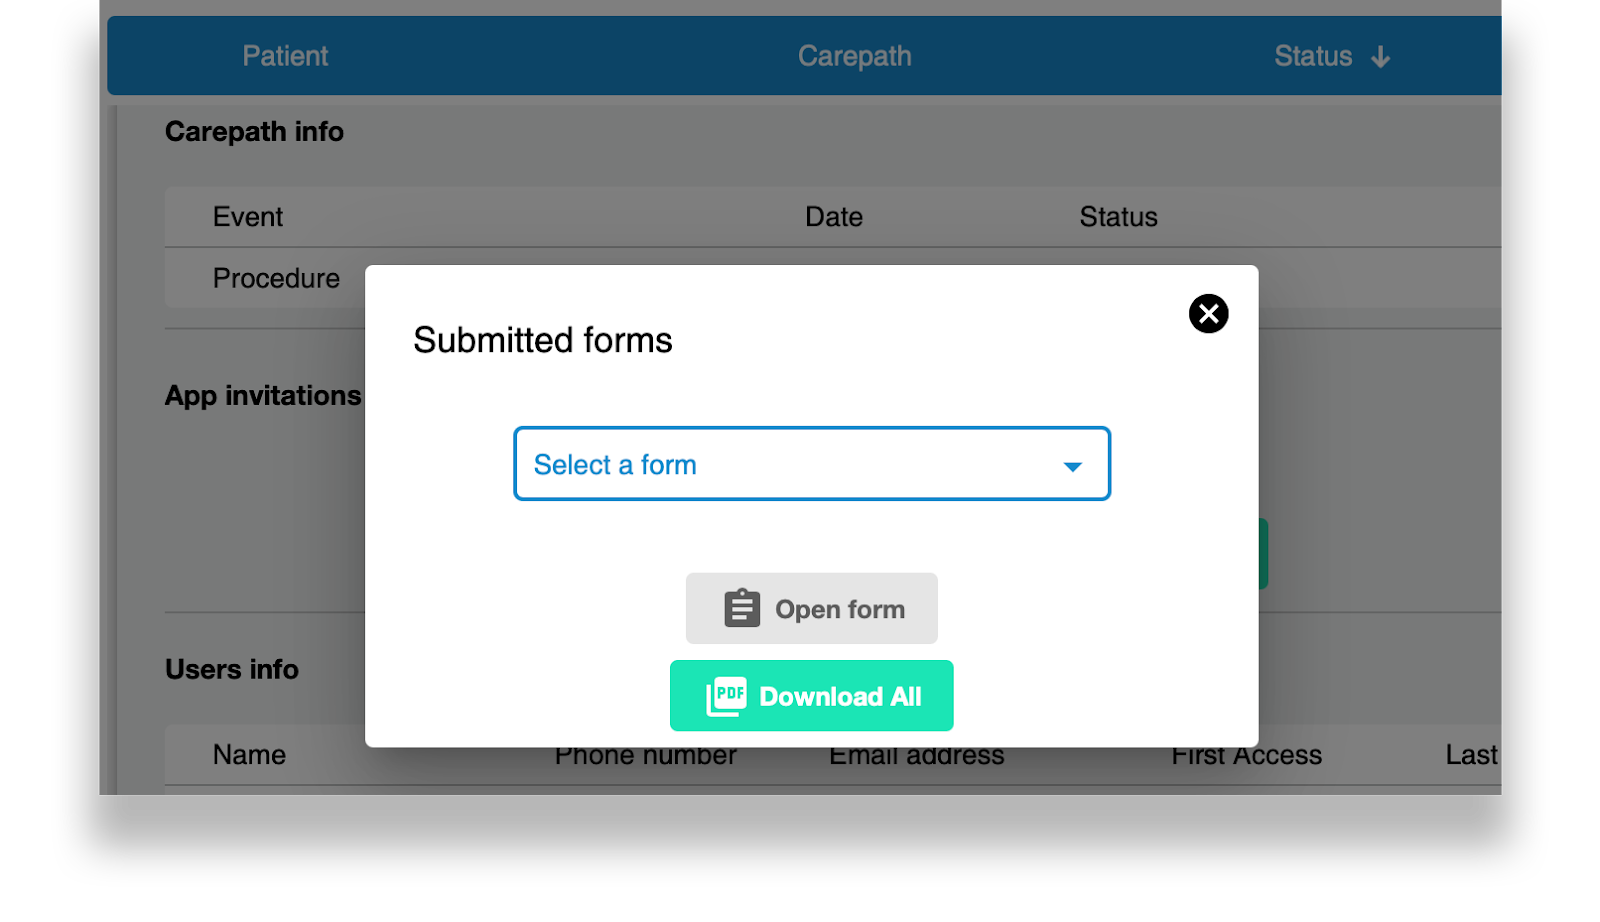 Merging all forms into one PDF file feature update